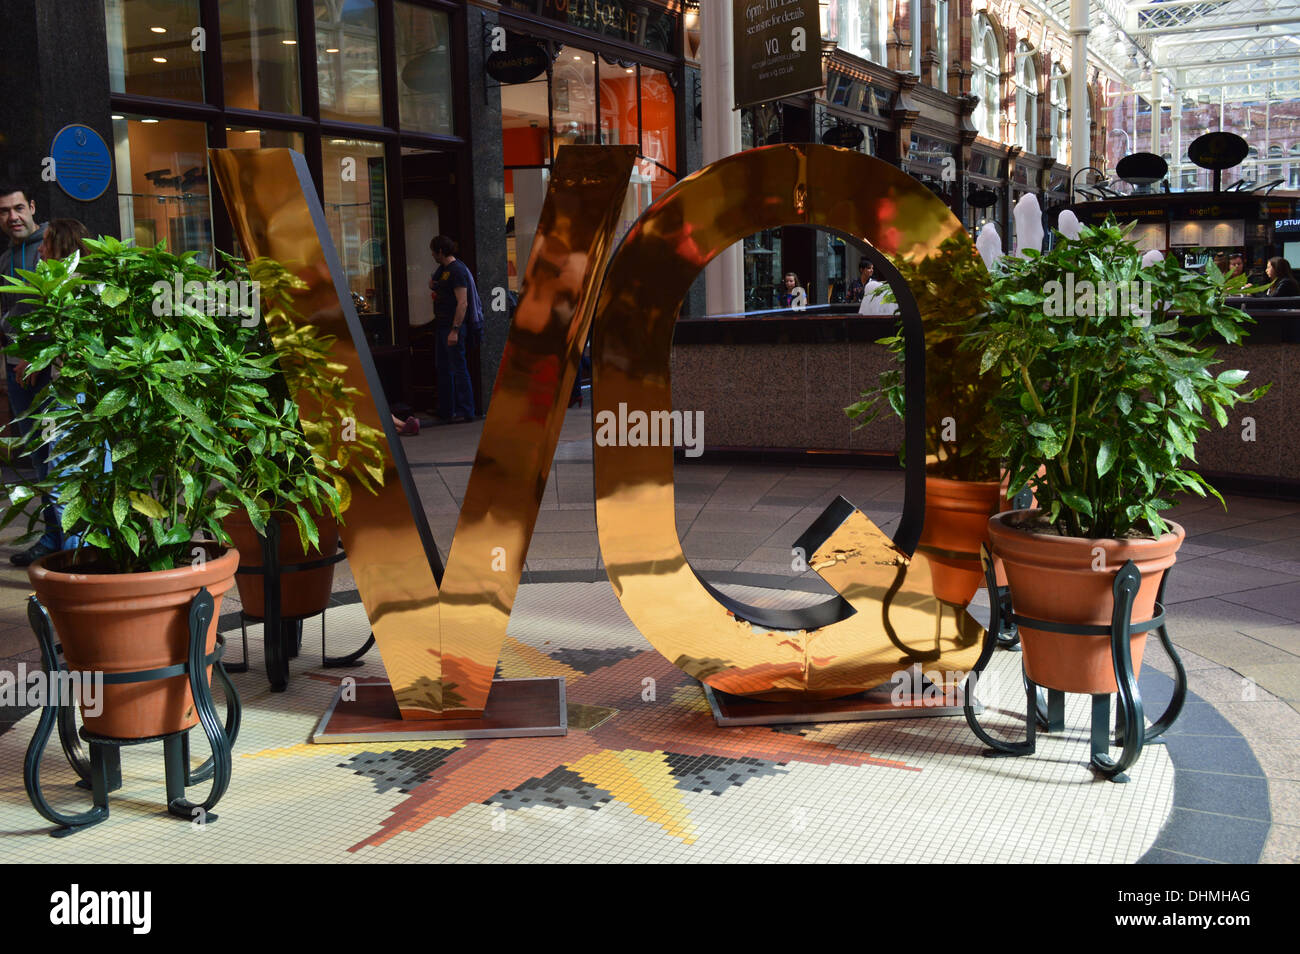 The VQ sign depicting the Victorian Quarter Shopping Area in the heart of Leeds, West Yorkshire - Stock Image